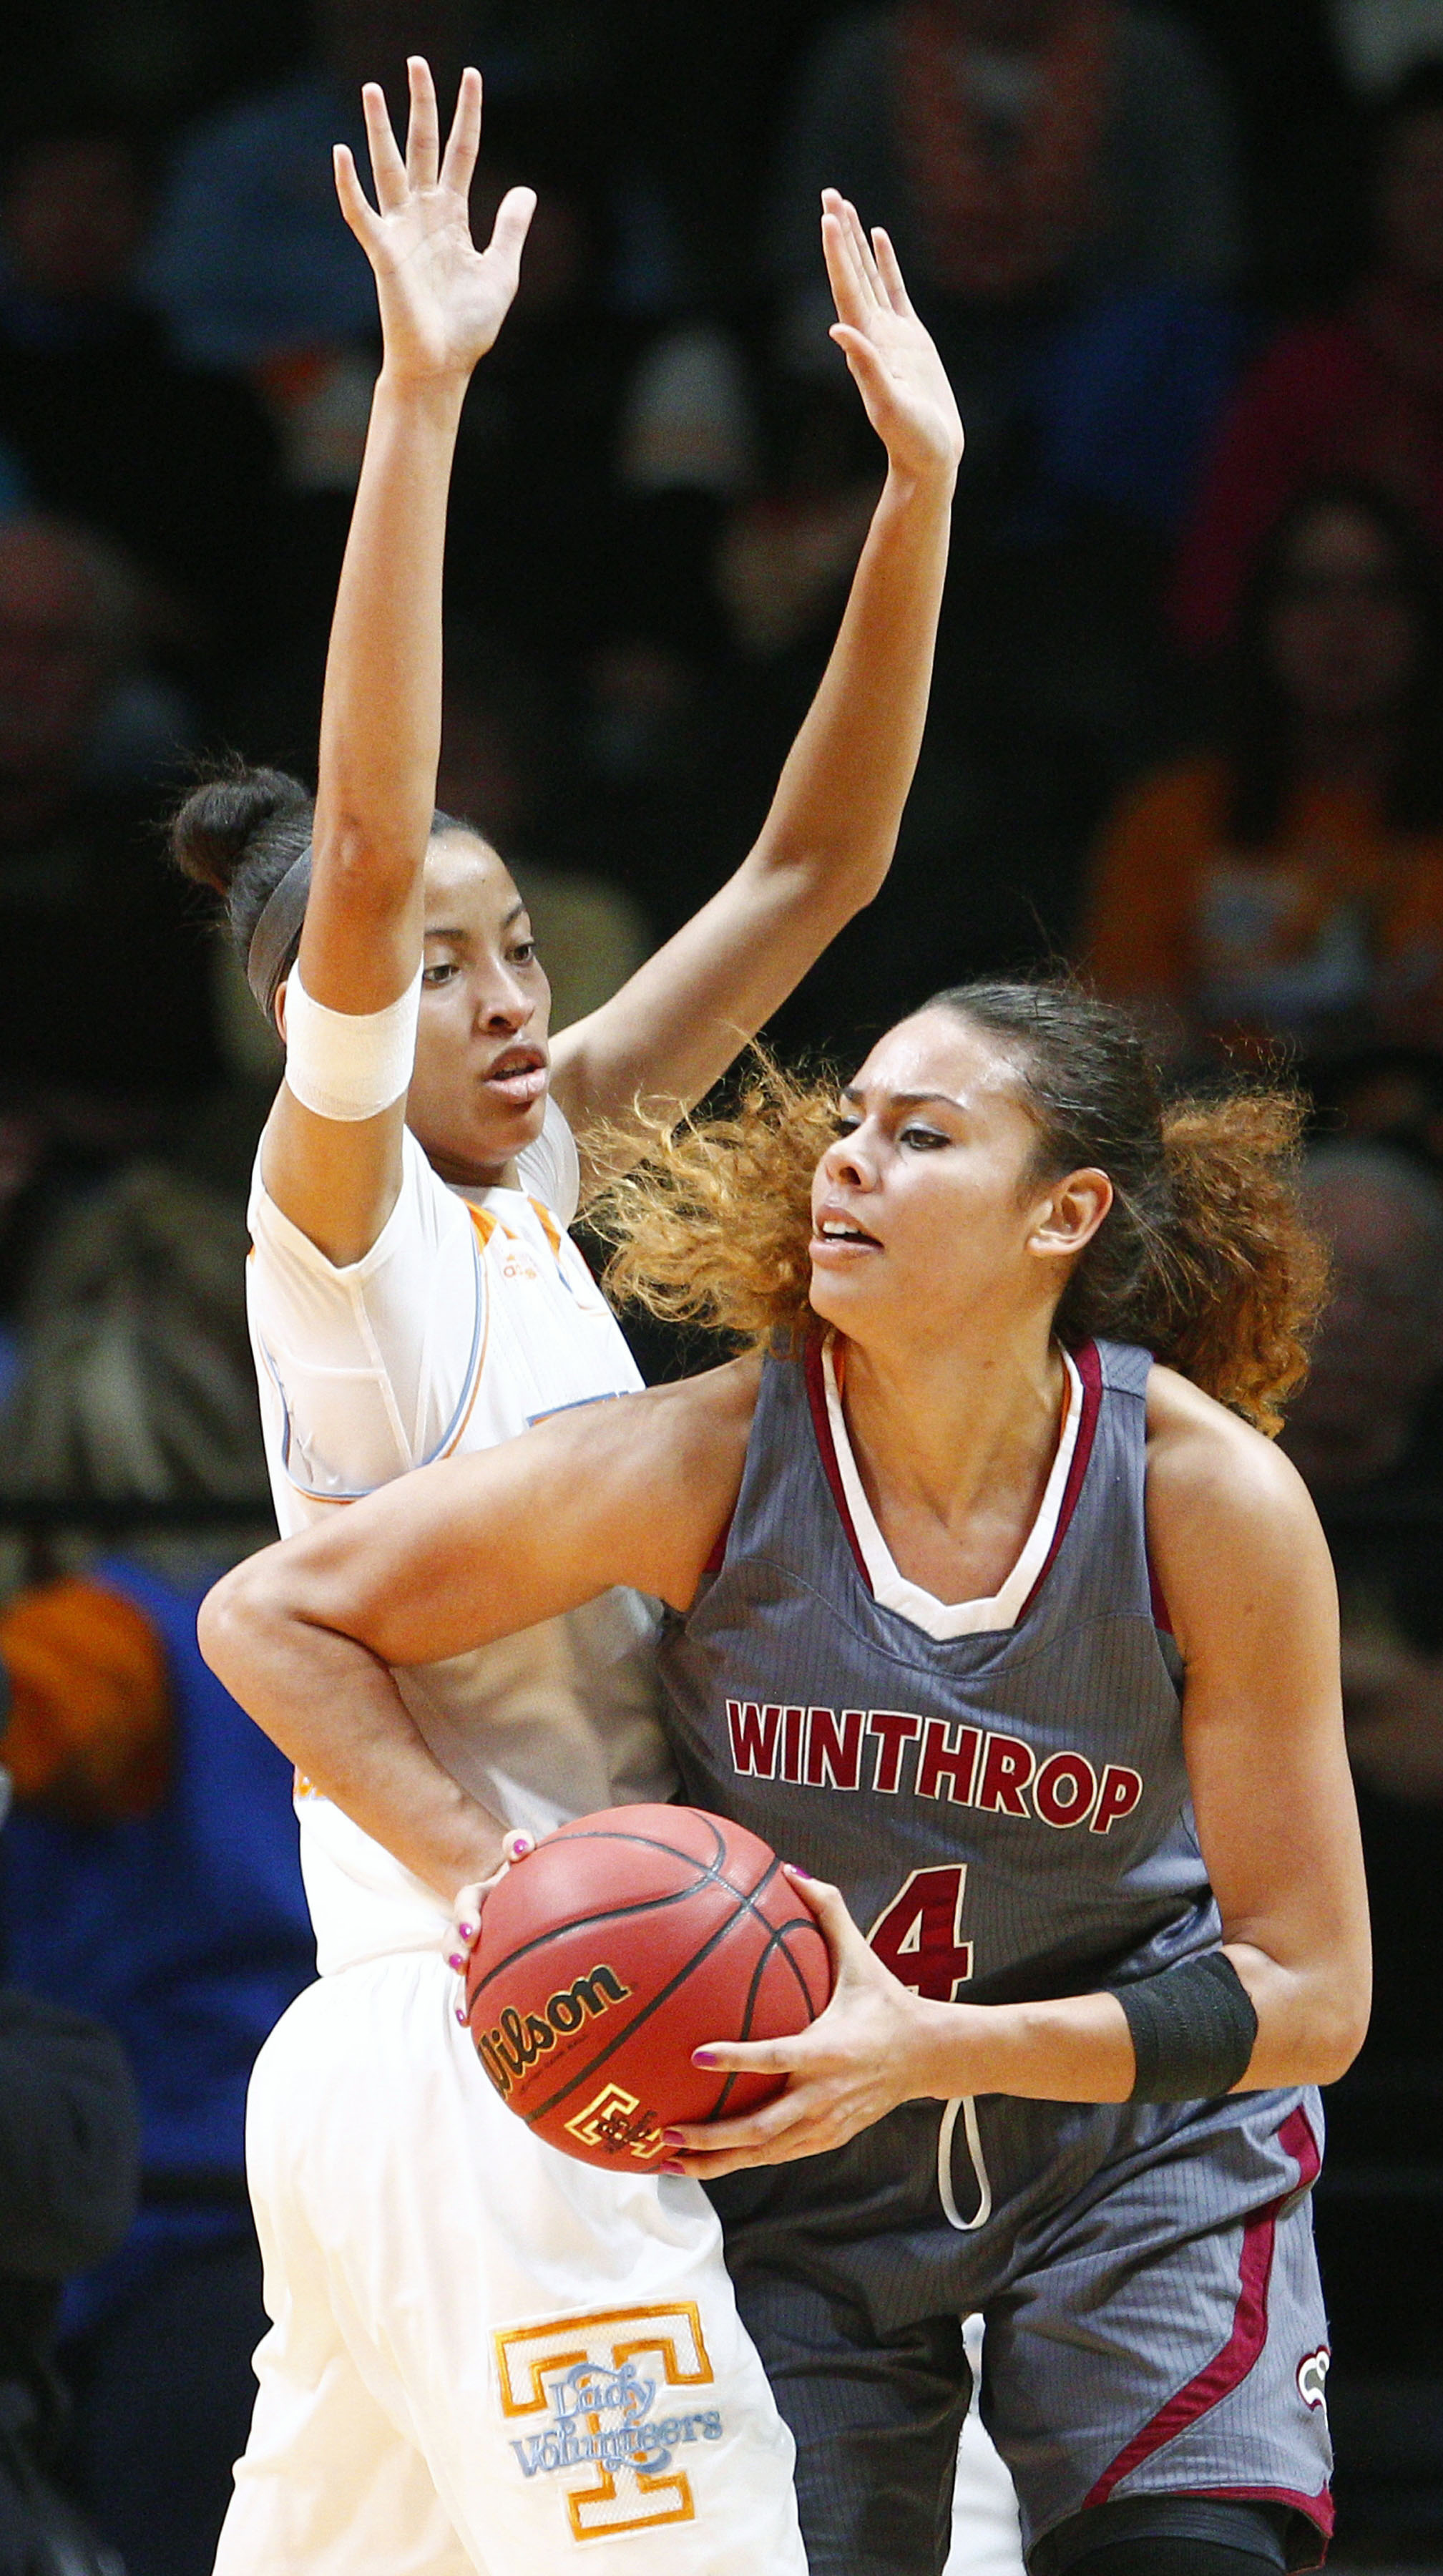 Winthrop center Schaquilla Nunn (4) works for a shot as she's defended by Tennessee center Nia Moore (1) in the second half of an NCAA college basketball game Friday, Nov. 21, 2014, in Knoxville, Tenn. Tennessee won 81-48. (AP Photo/Wade Payne)